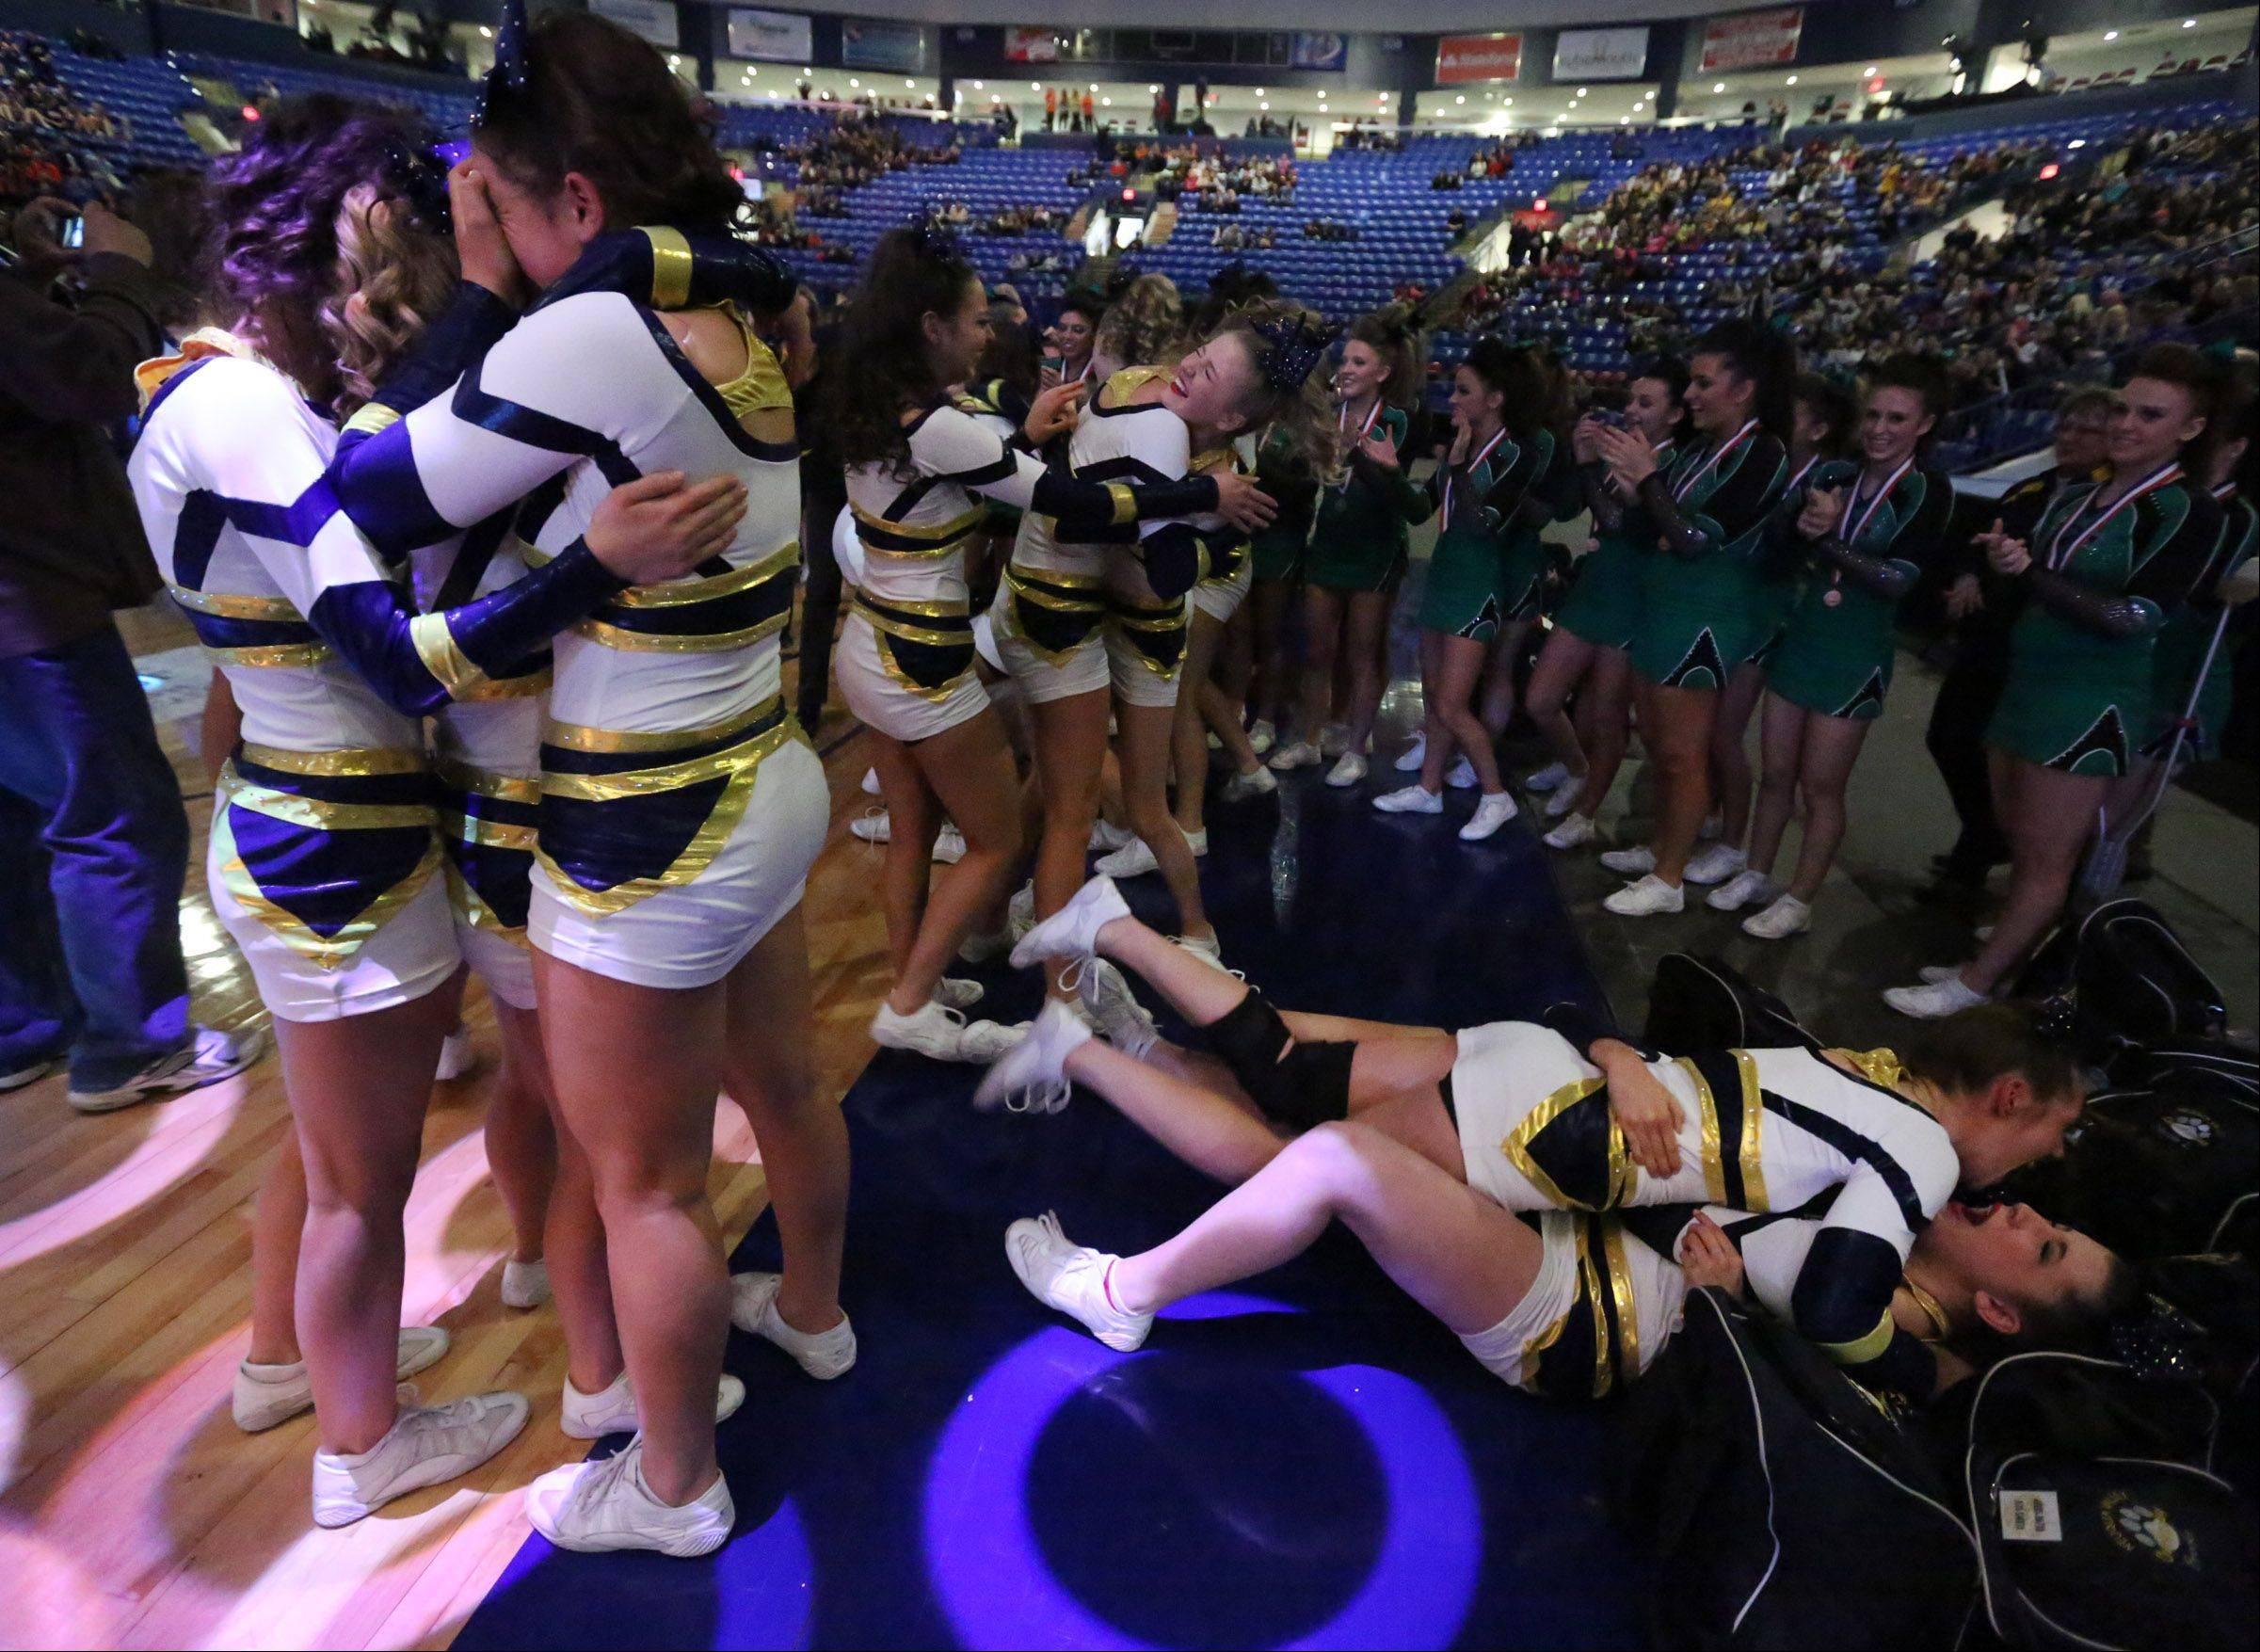 Neuqua Valley reacts to the announcement that they took third place in the large team category at the IHSA state finals on Saturday in Bloomington.